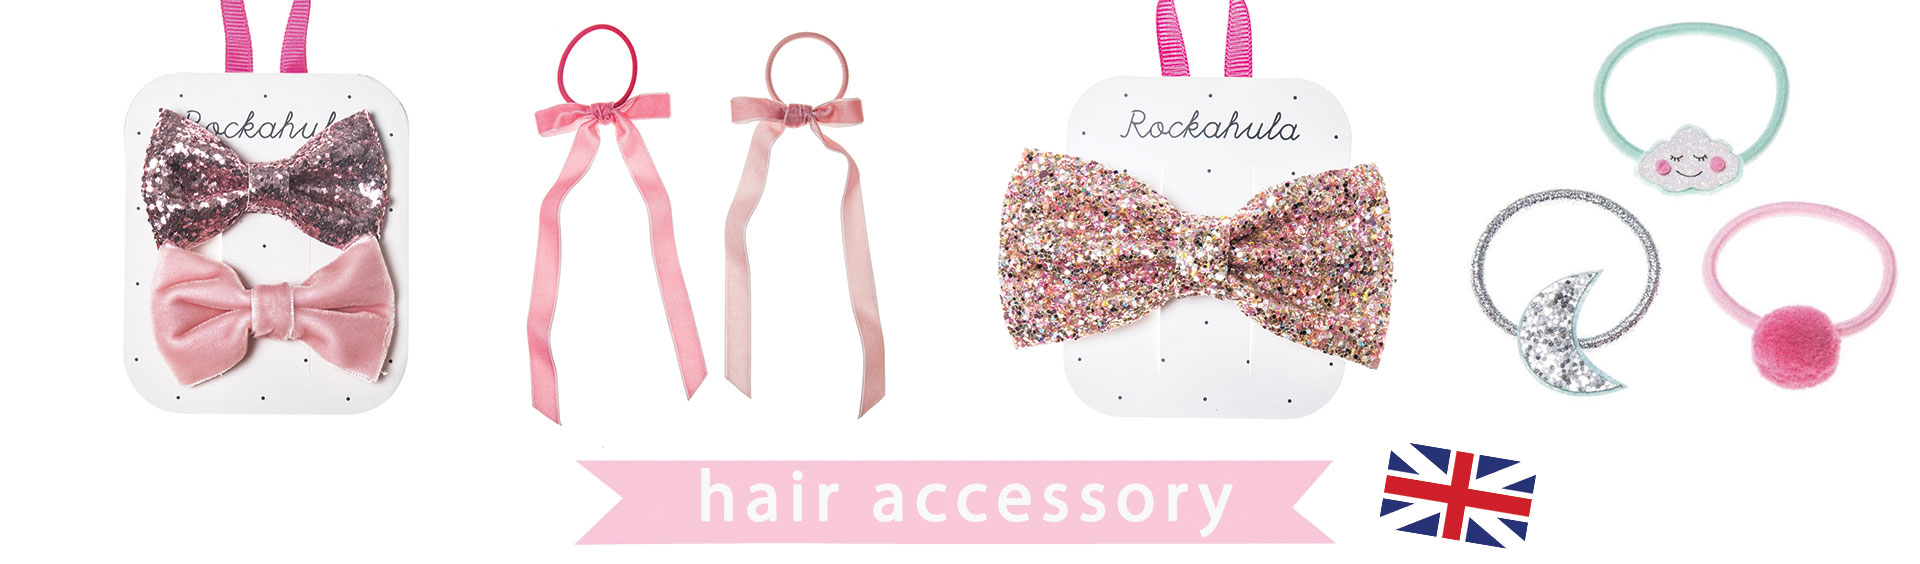 rockahula, 髮飾, 飾品, 髮夾, accessory, hairclip, hairaccessory